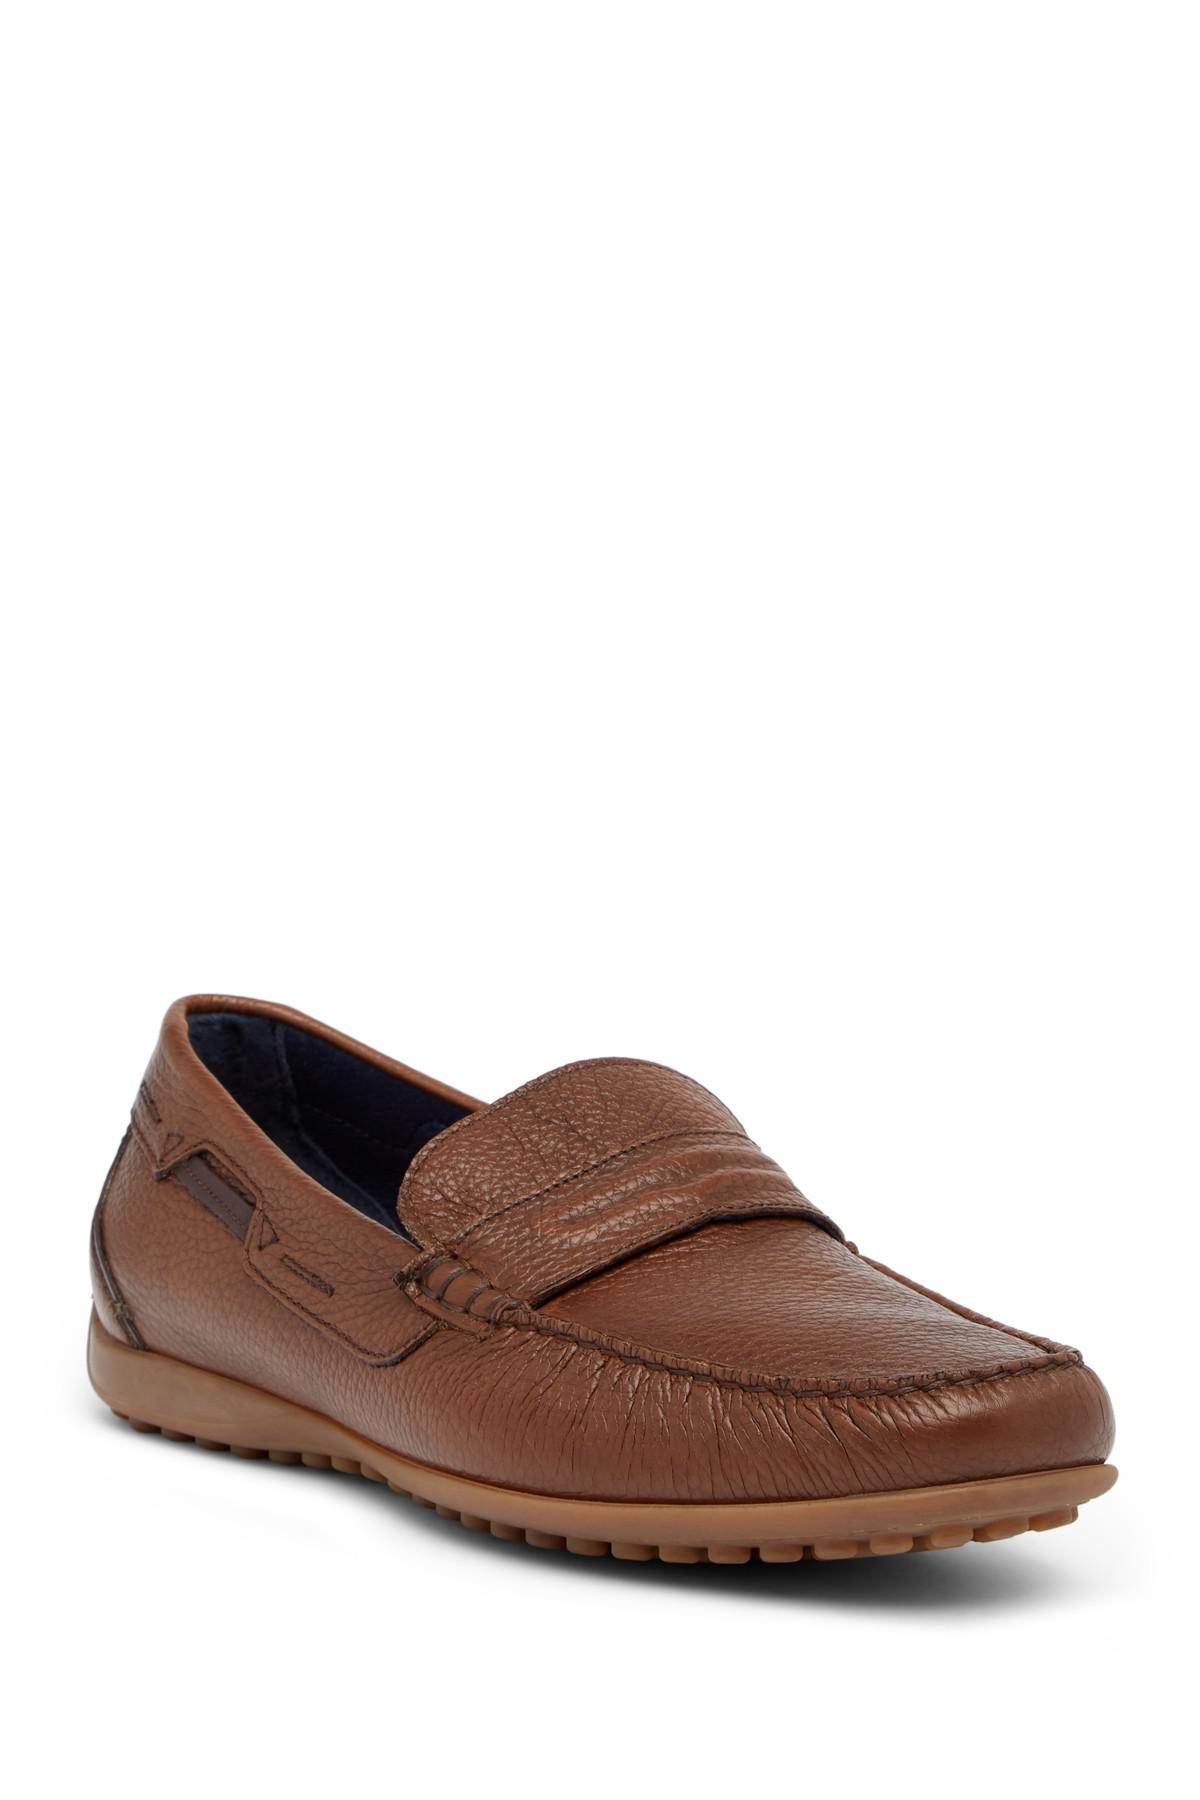 cc003bd34d1 Lyst - Bacco Bucci Berra Leather Loafer in Brown for Men